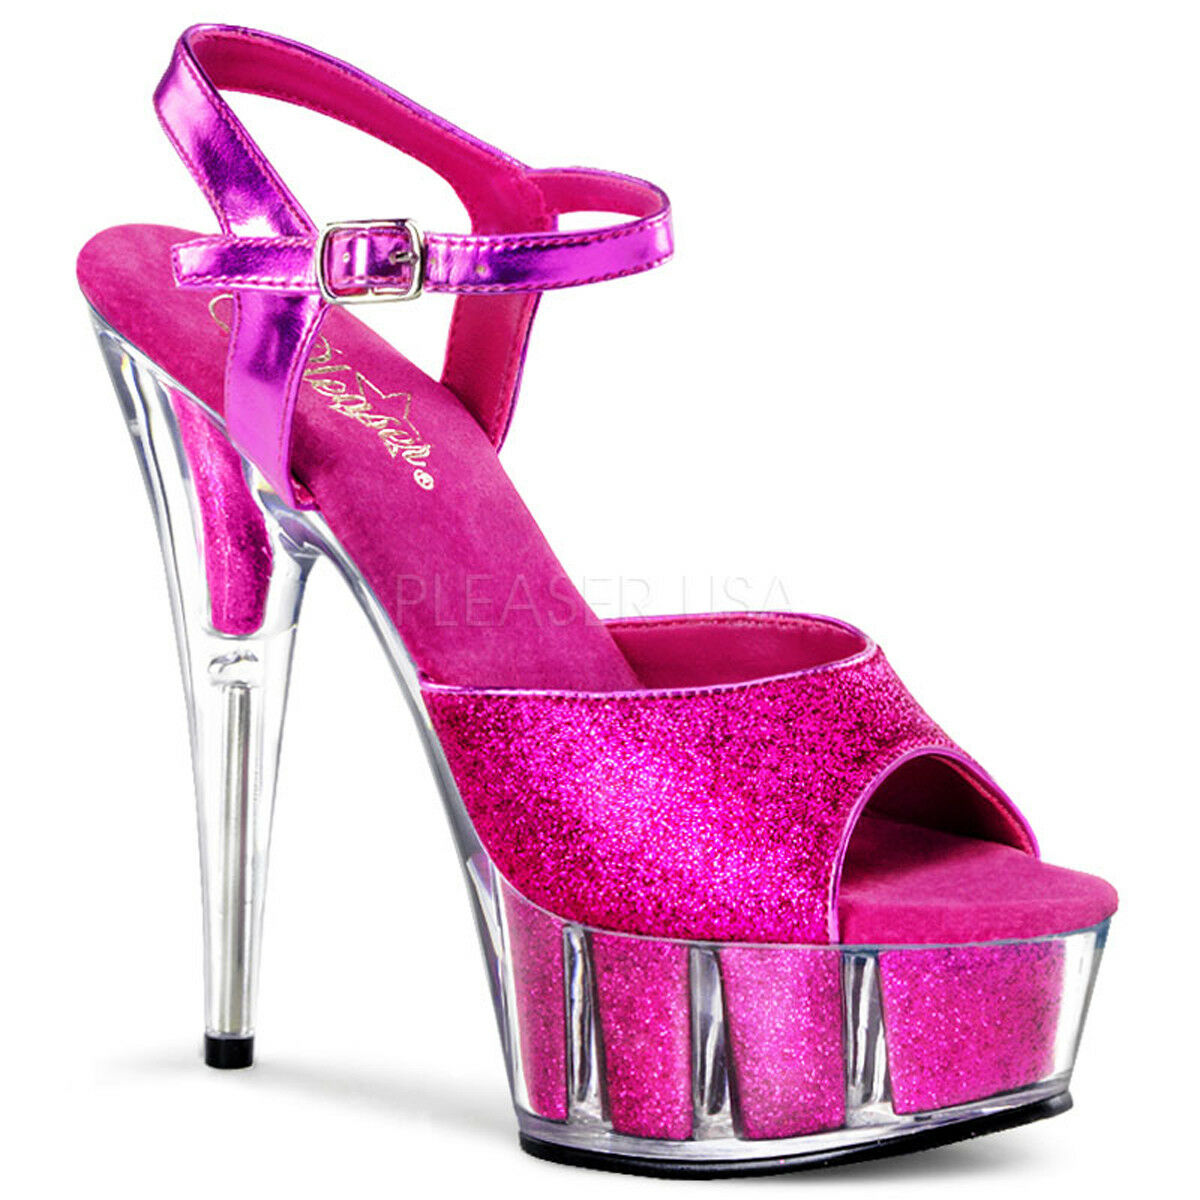 Pleaser Pleaser Pleaser DELIGHT-609-5G Platforms Exotic Dancing Hot Rosa Sexy Glitter High Heels 4d45a0